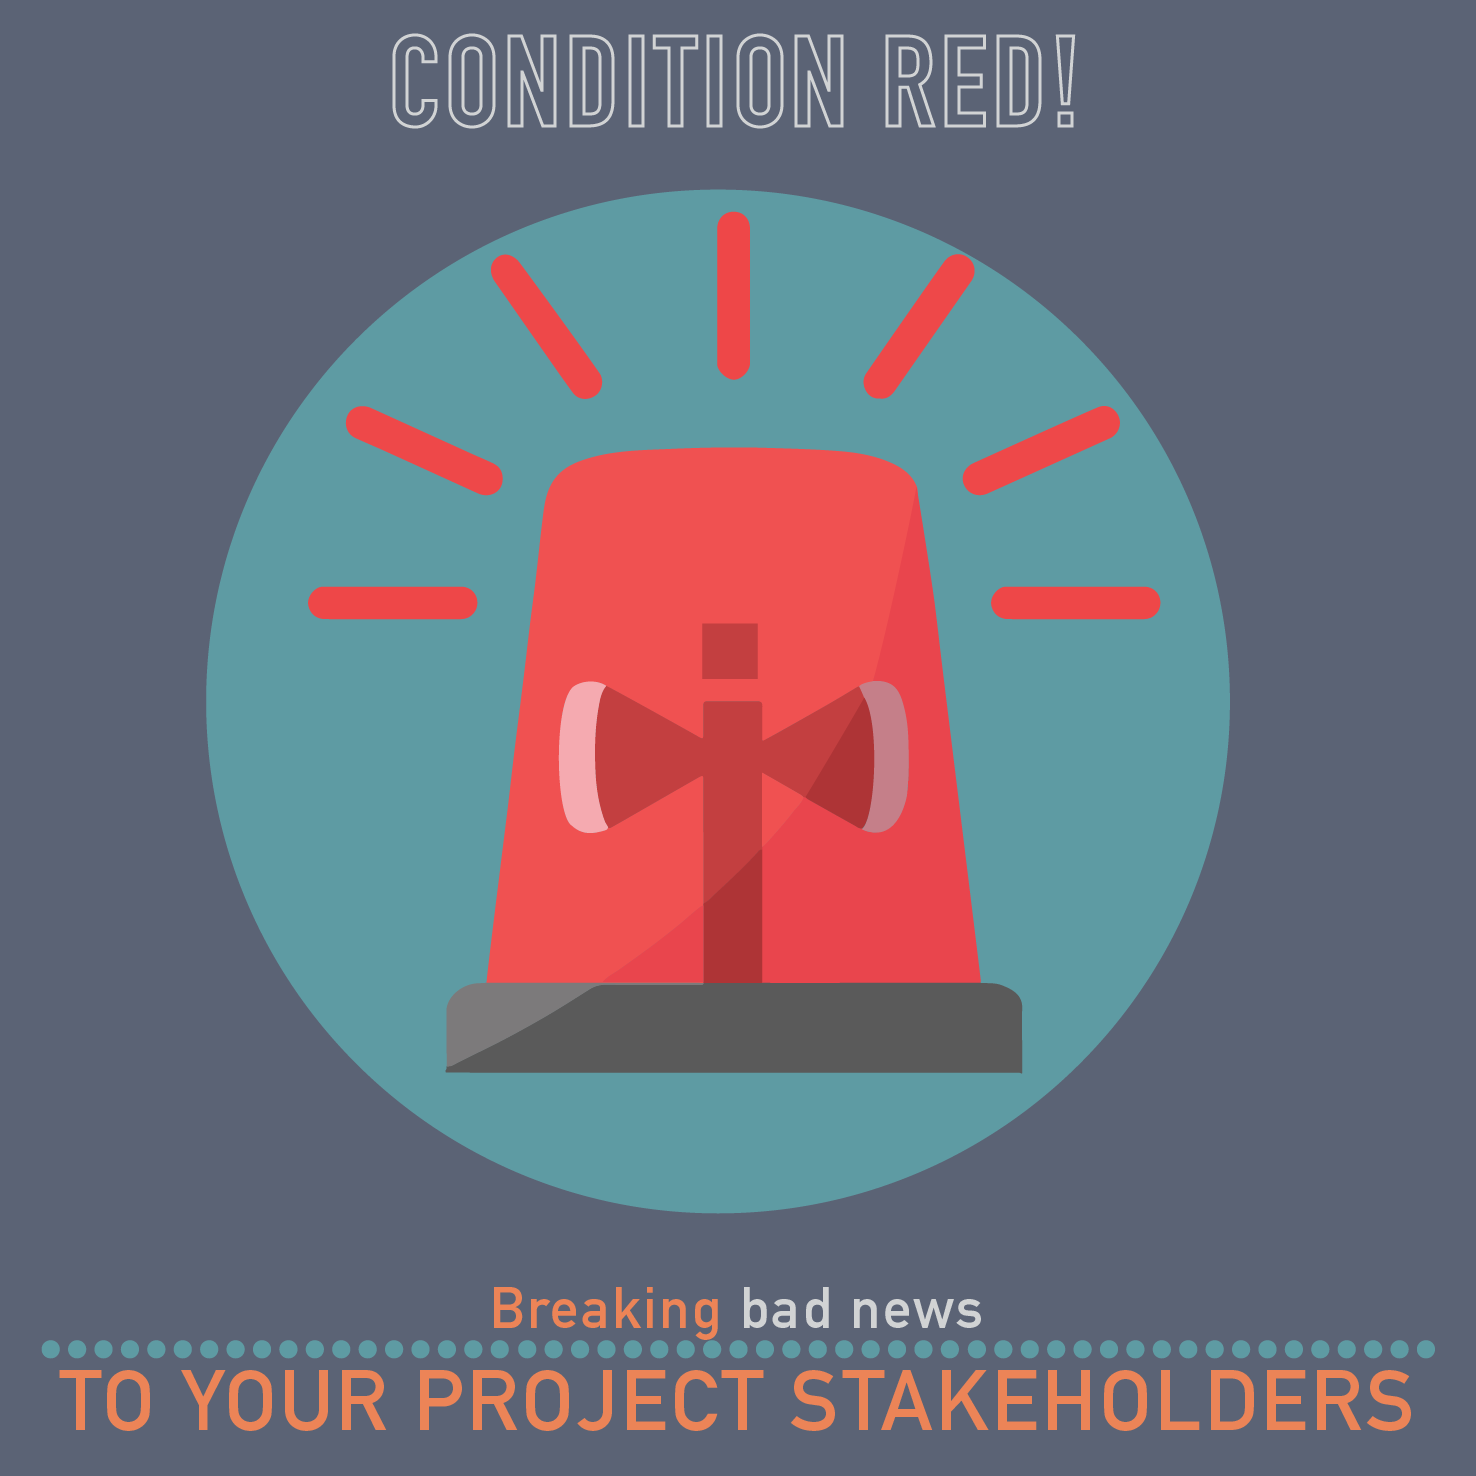 PM Happy Hour 014-Condition RED! Breaking bad news to your stakeholders